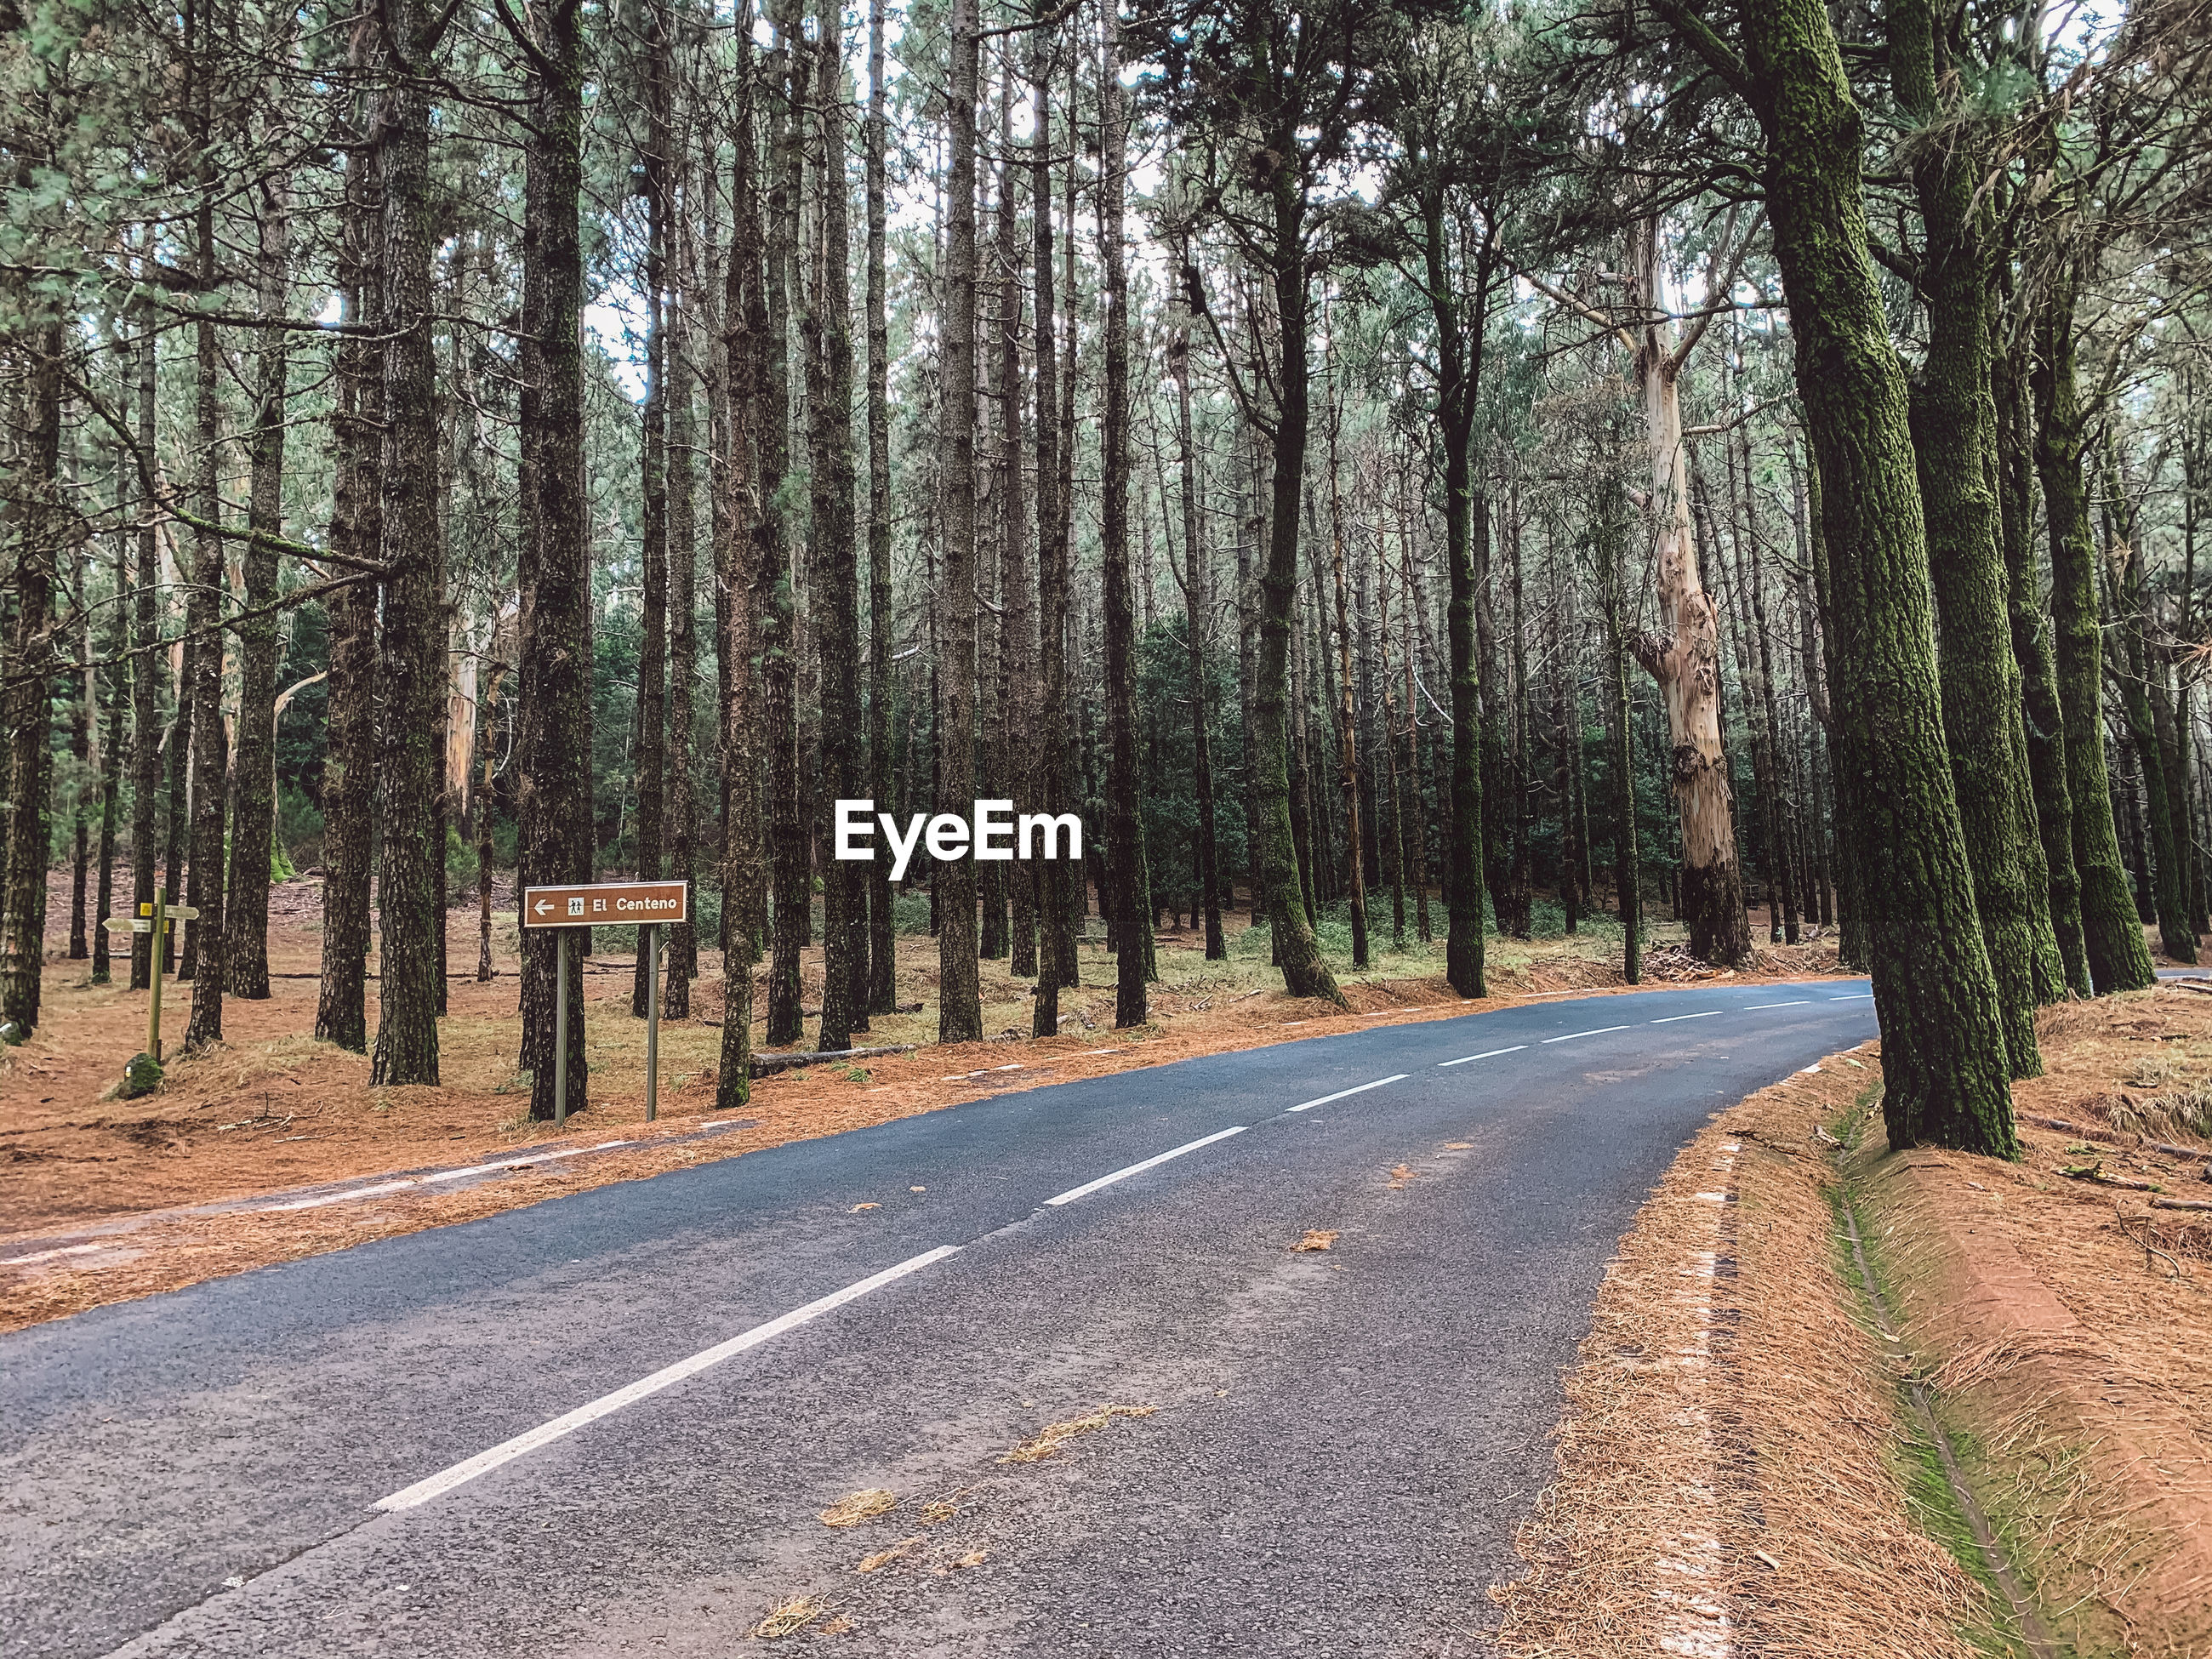 VIEW OF EMPTY ROAD ALONG TREES